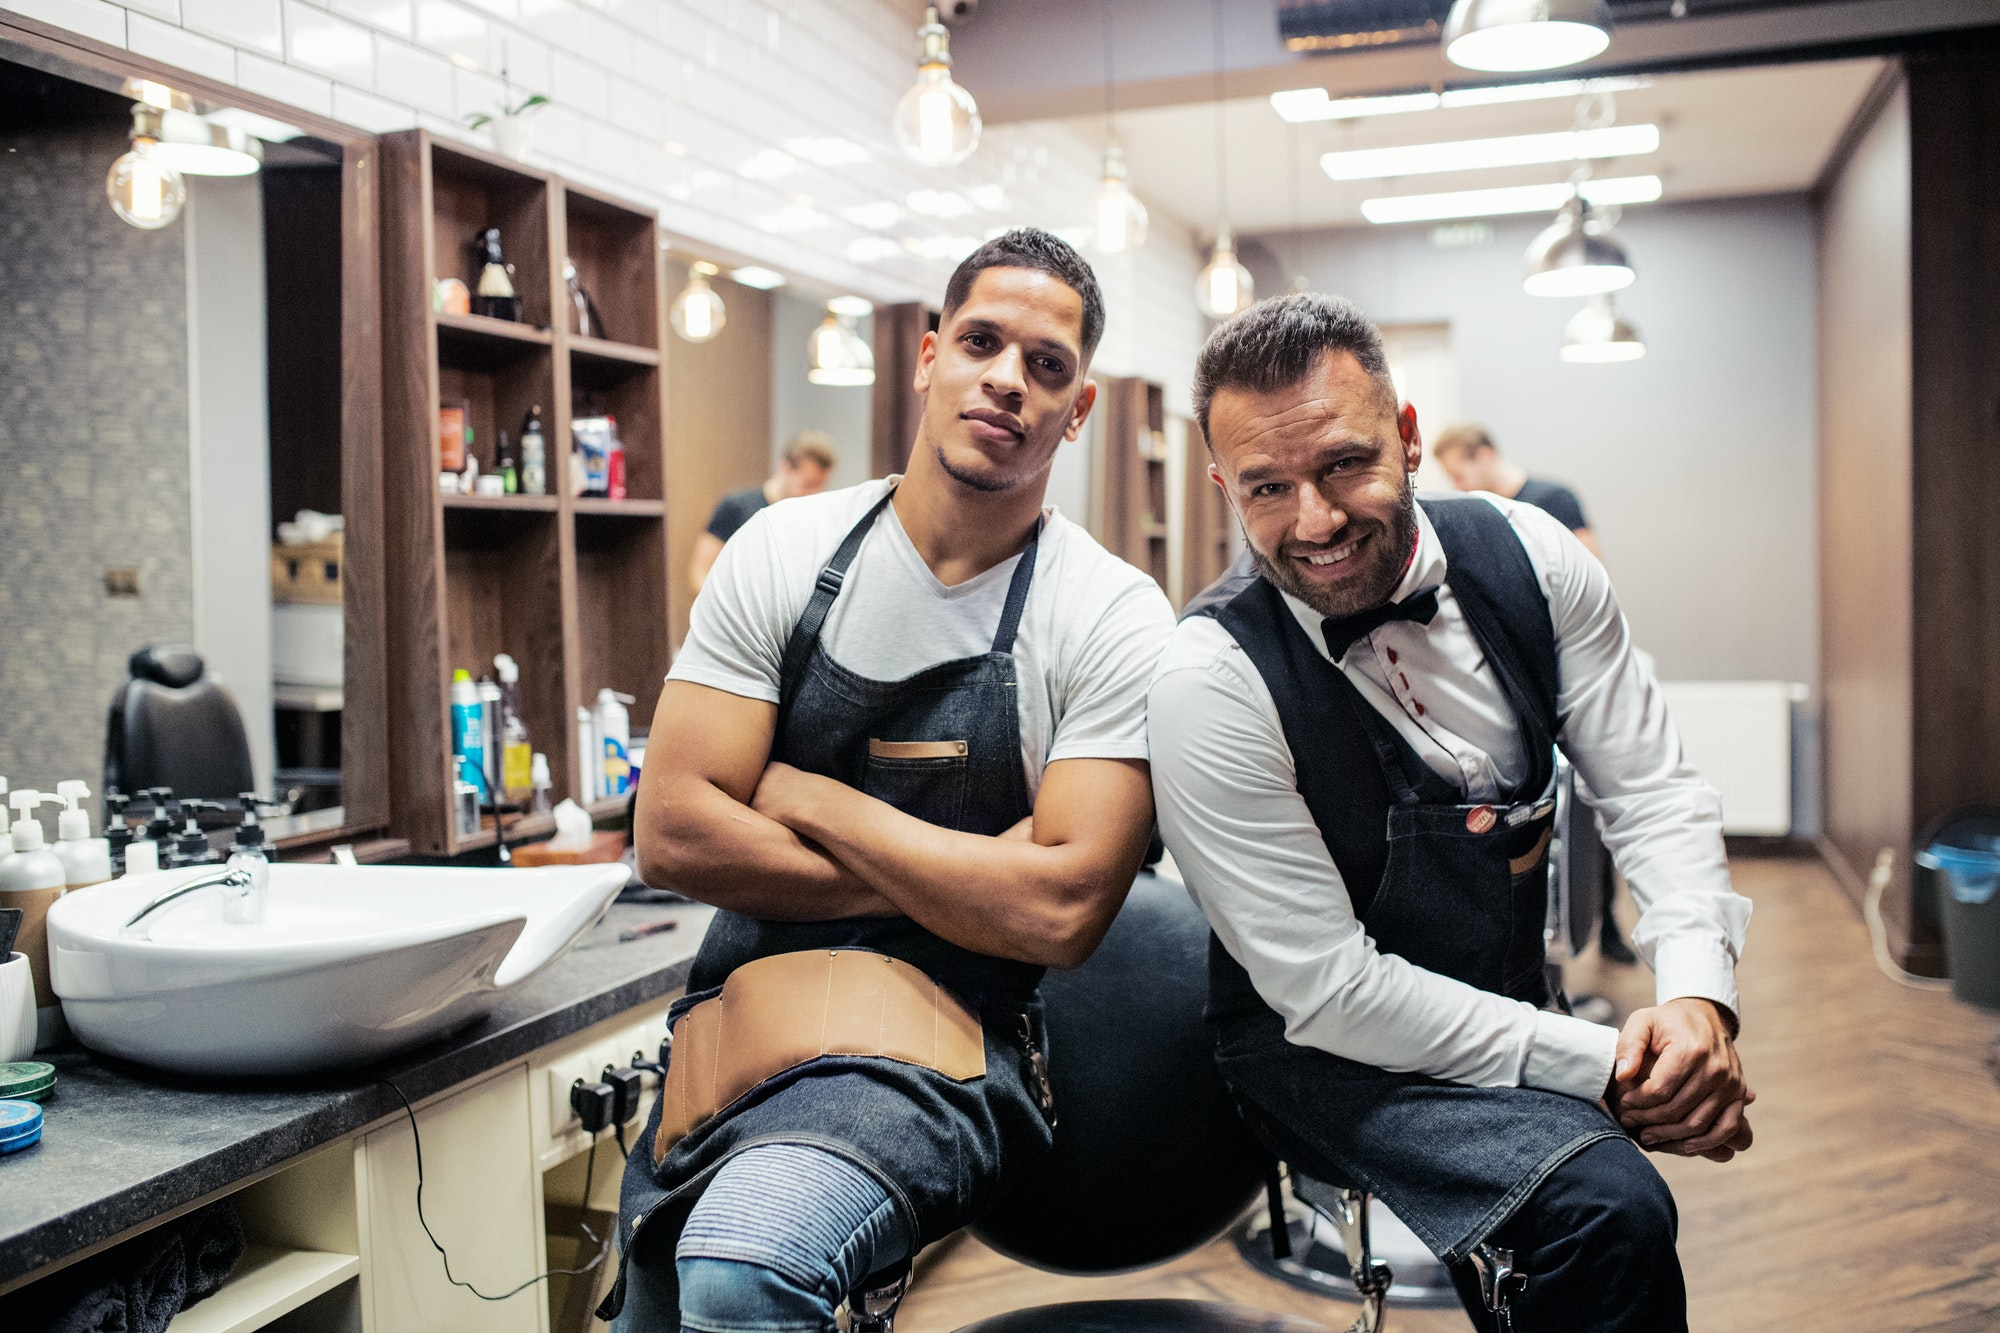 Two male haidressers and hairstylists sitting in barber shop.